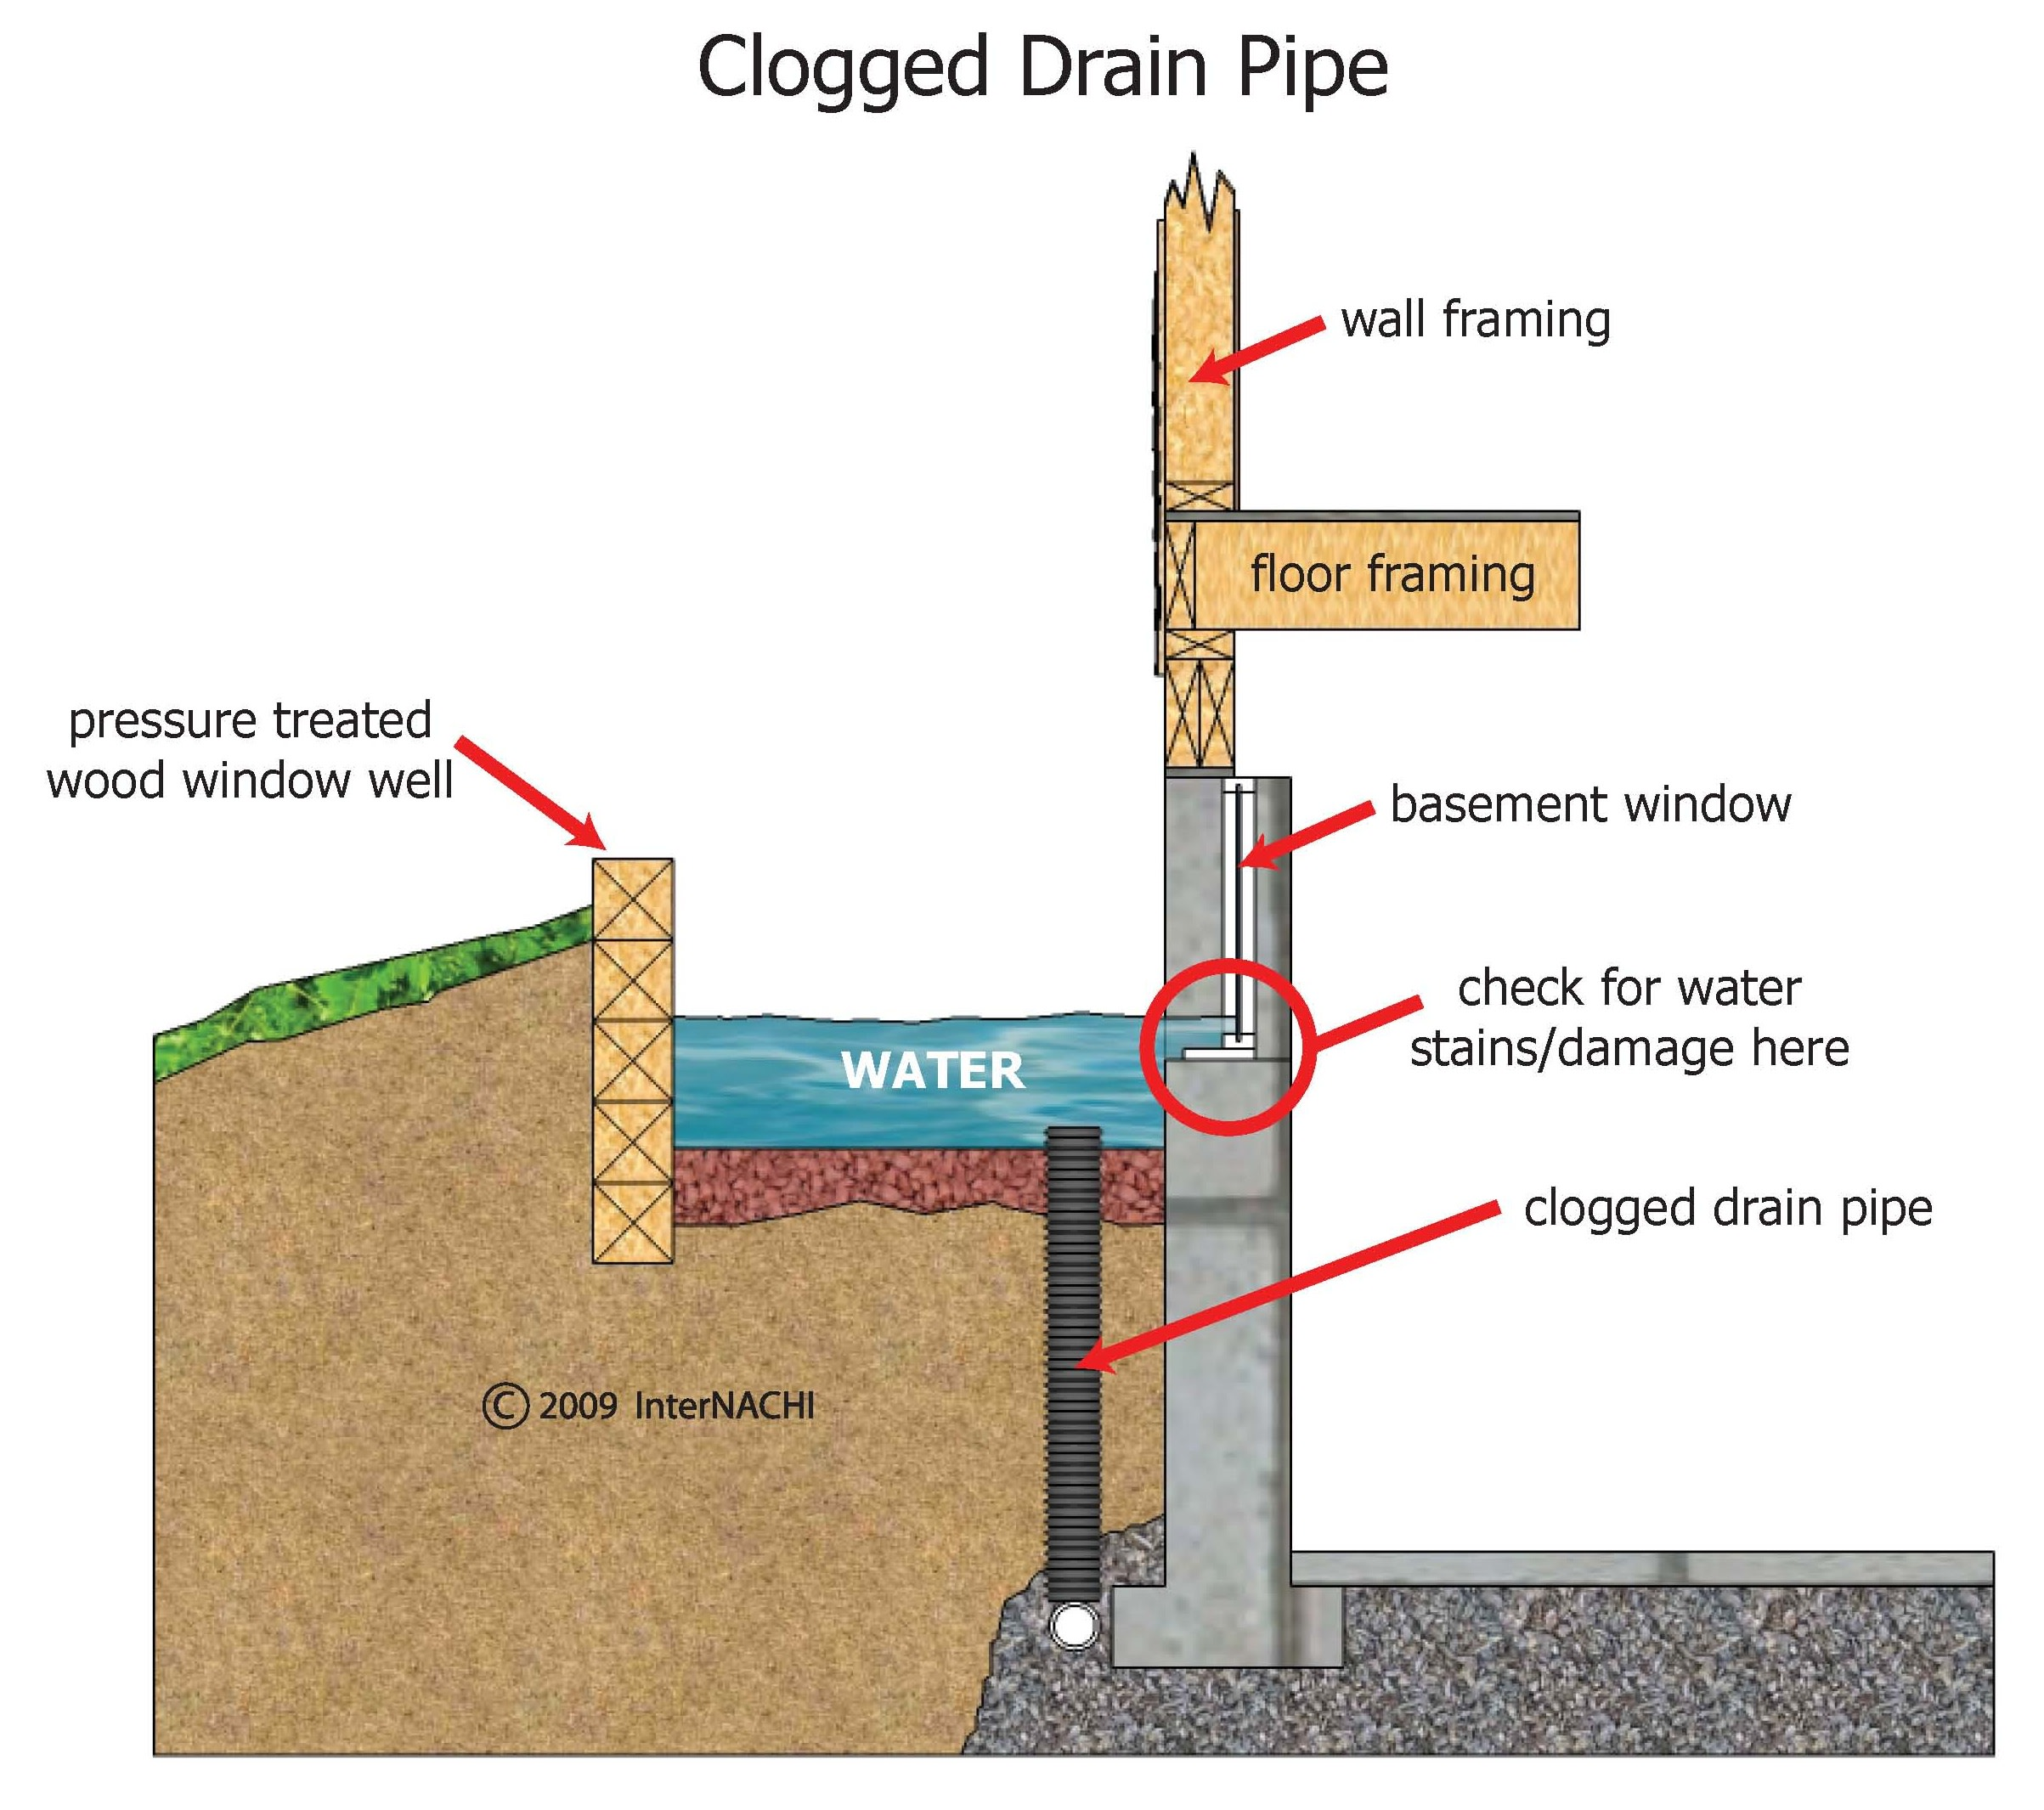 Clogged drain at well window.